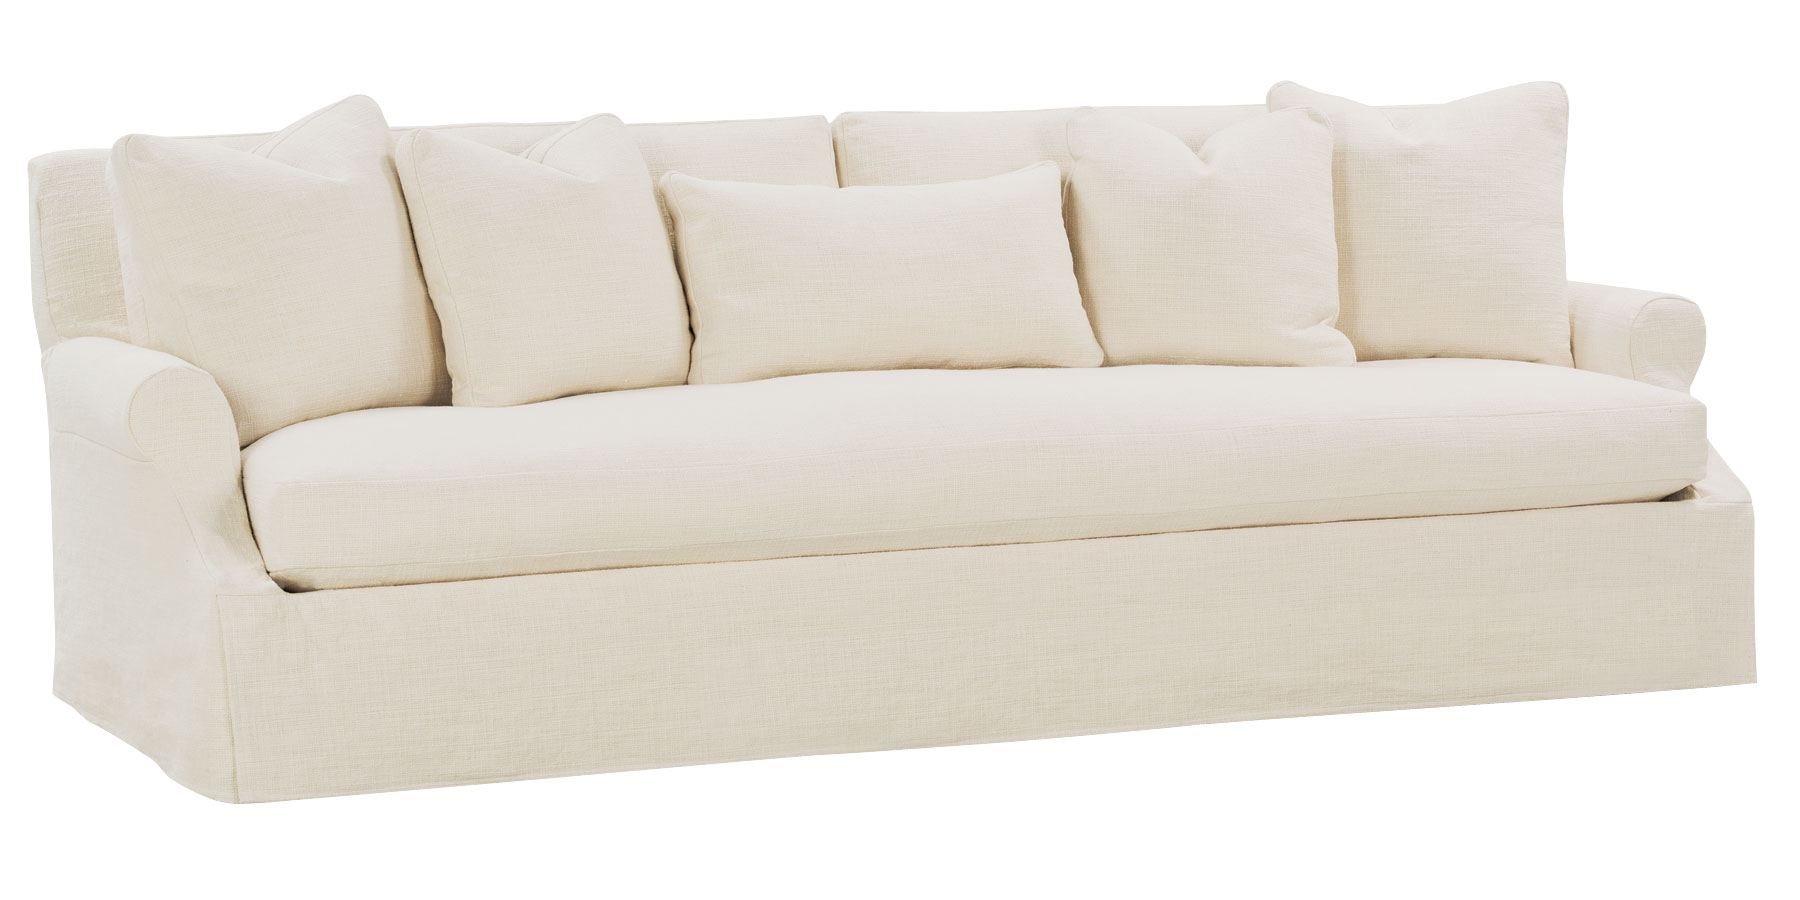 AMB Furniture for living dining and bed room sectional